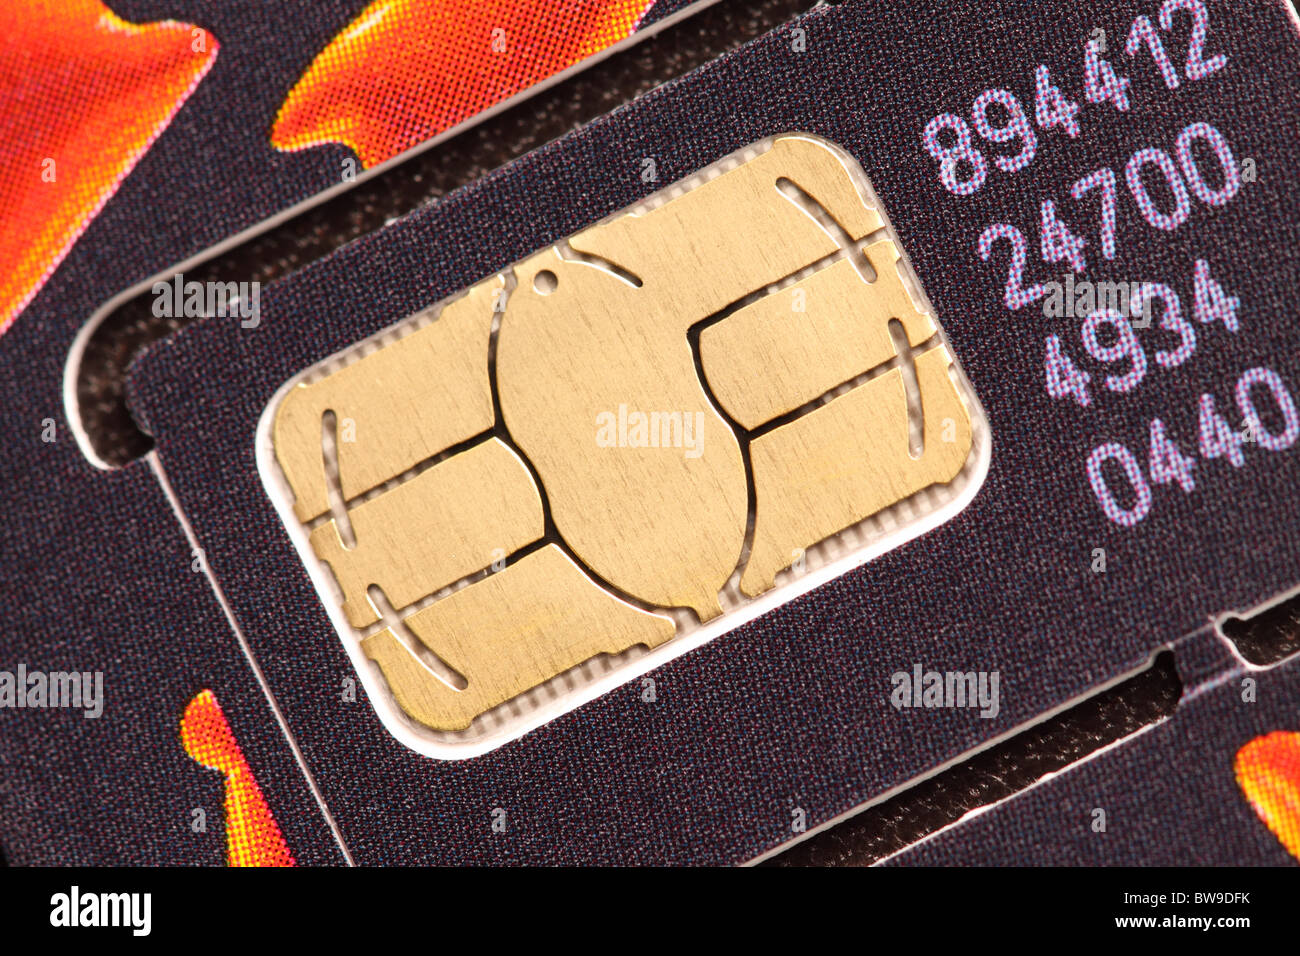 New Sim card for a Mobile Phone - Stock Image